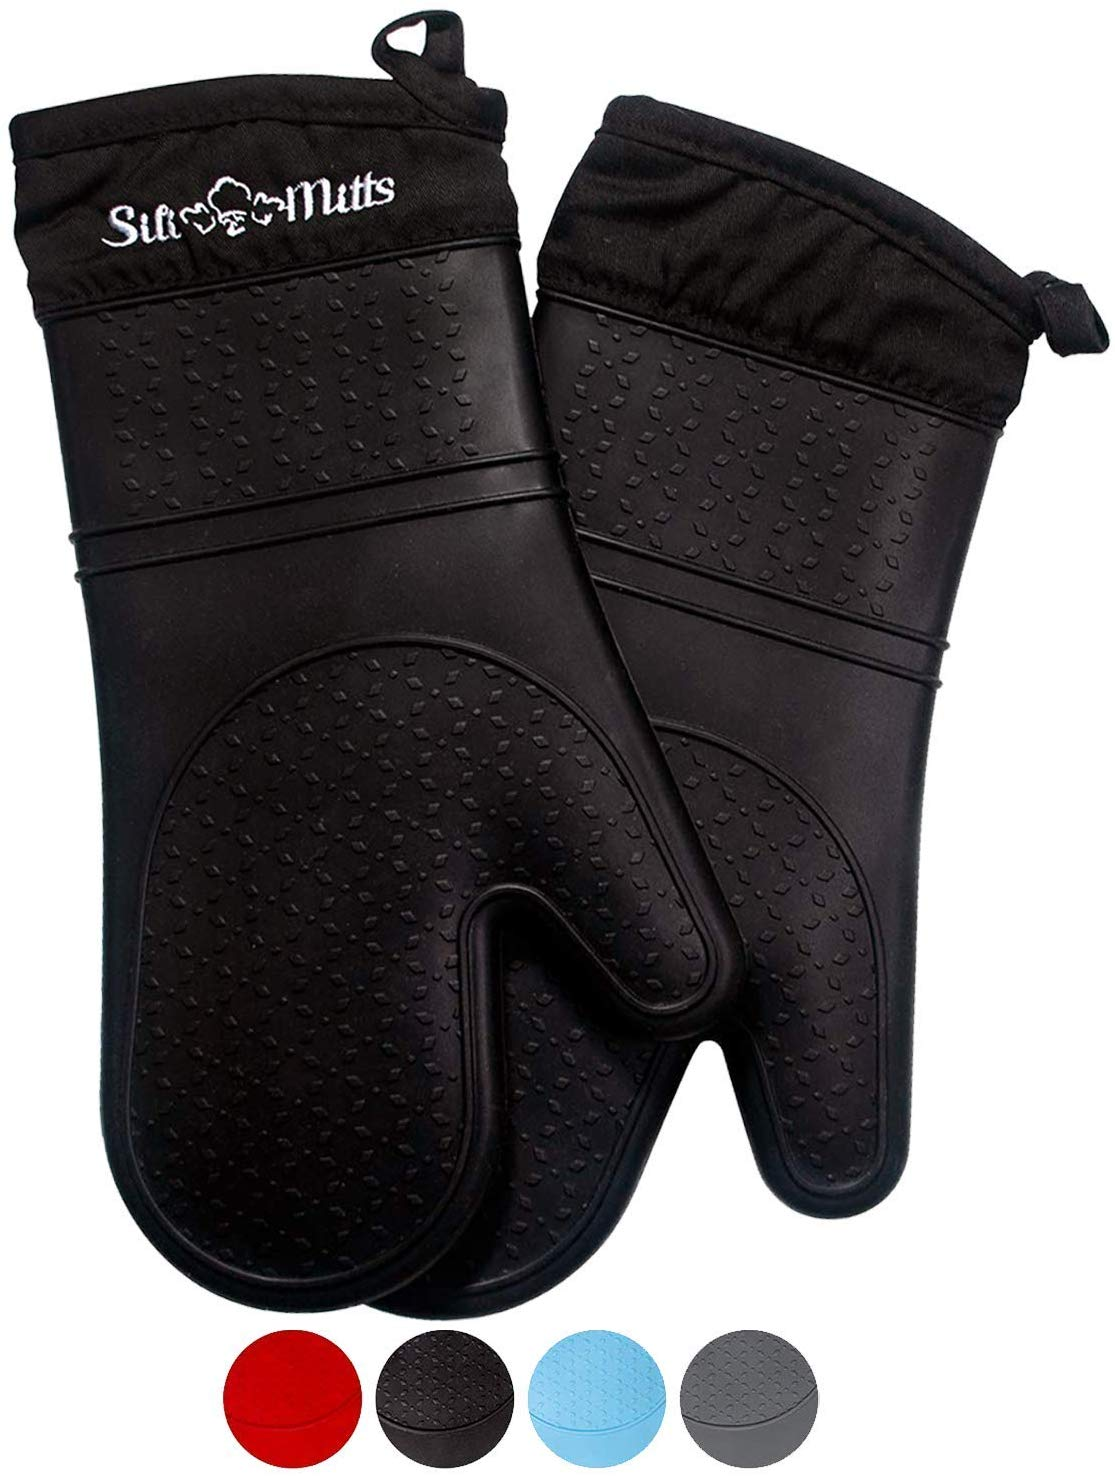 Frux Home and Yard Black Silicone Oven Mitts – 1 Pair